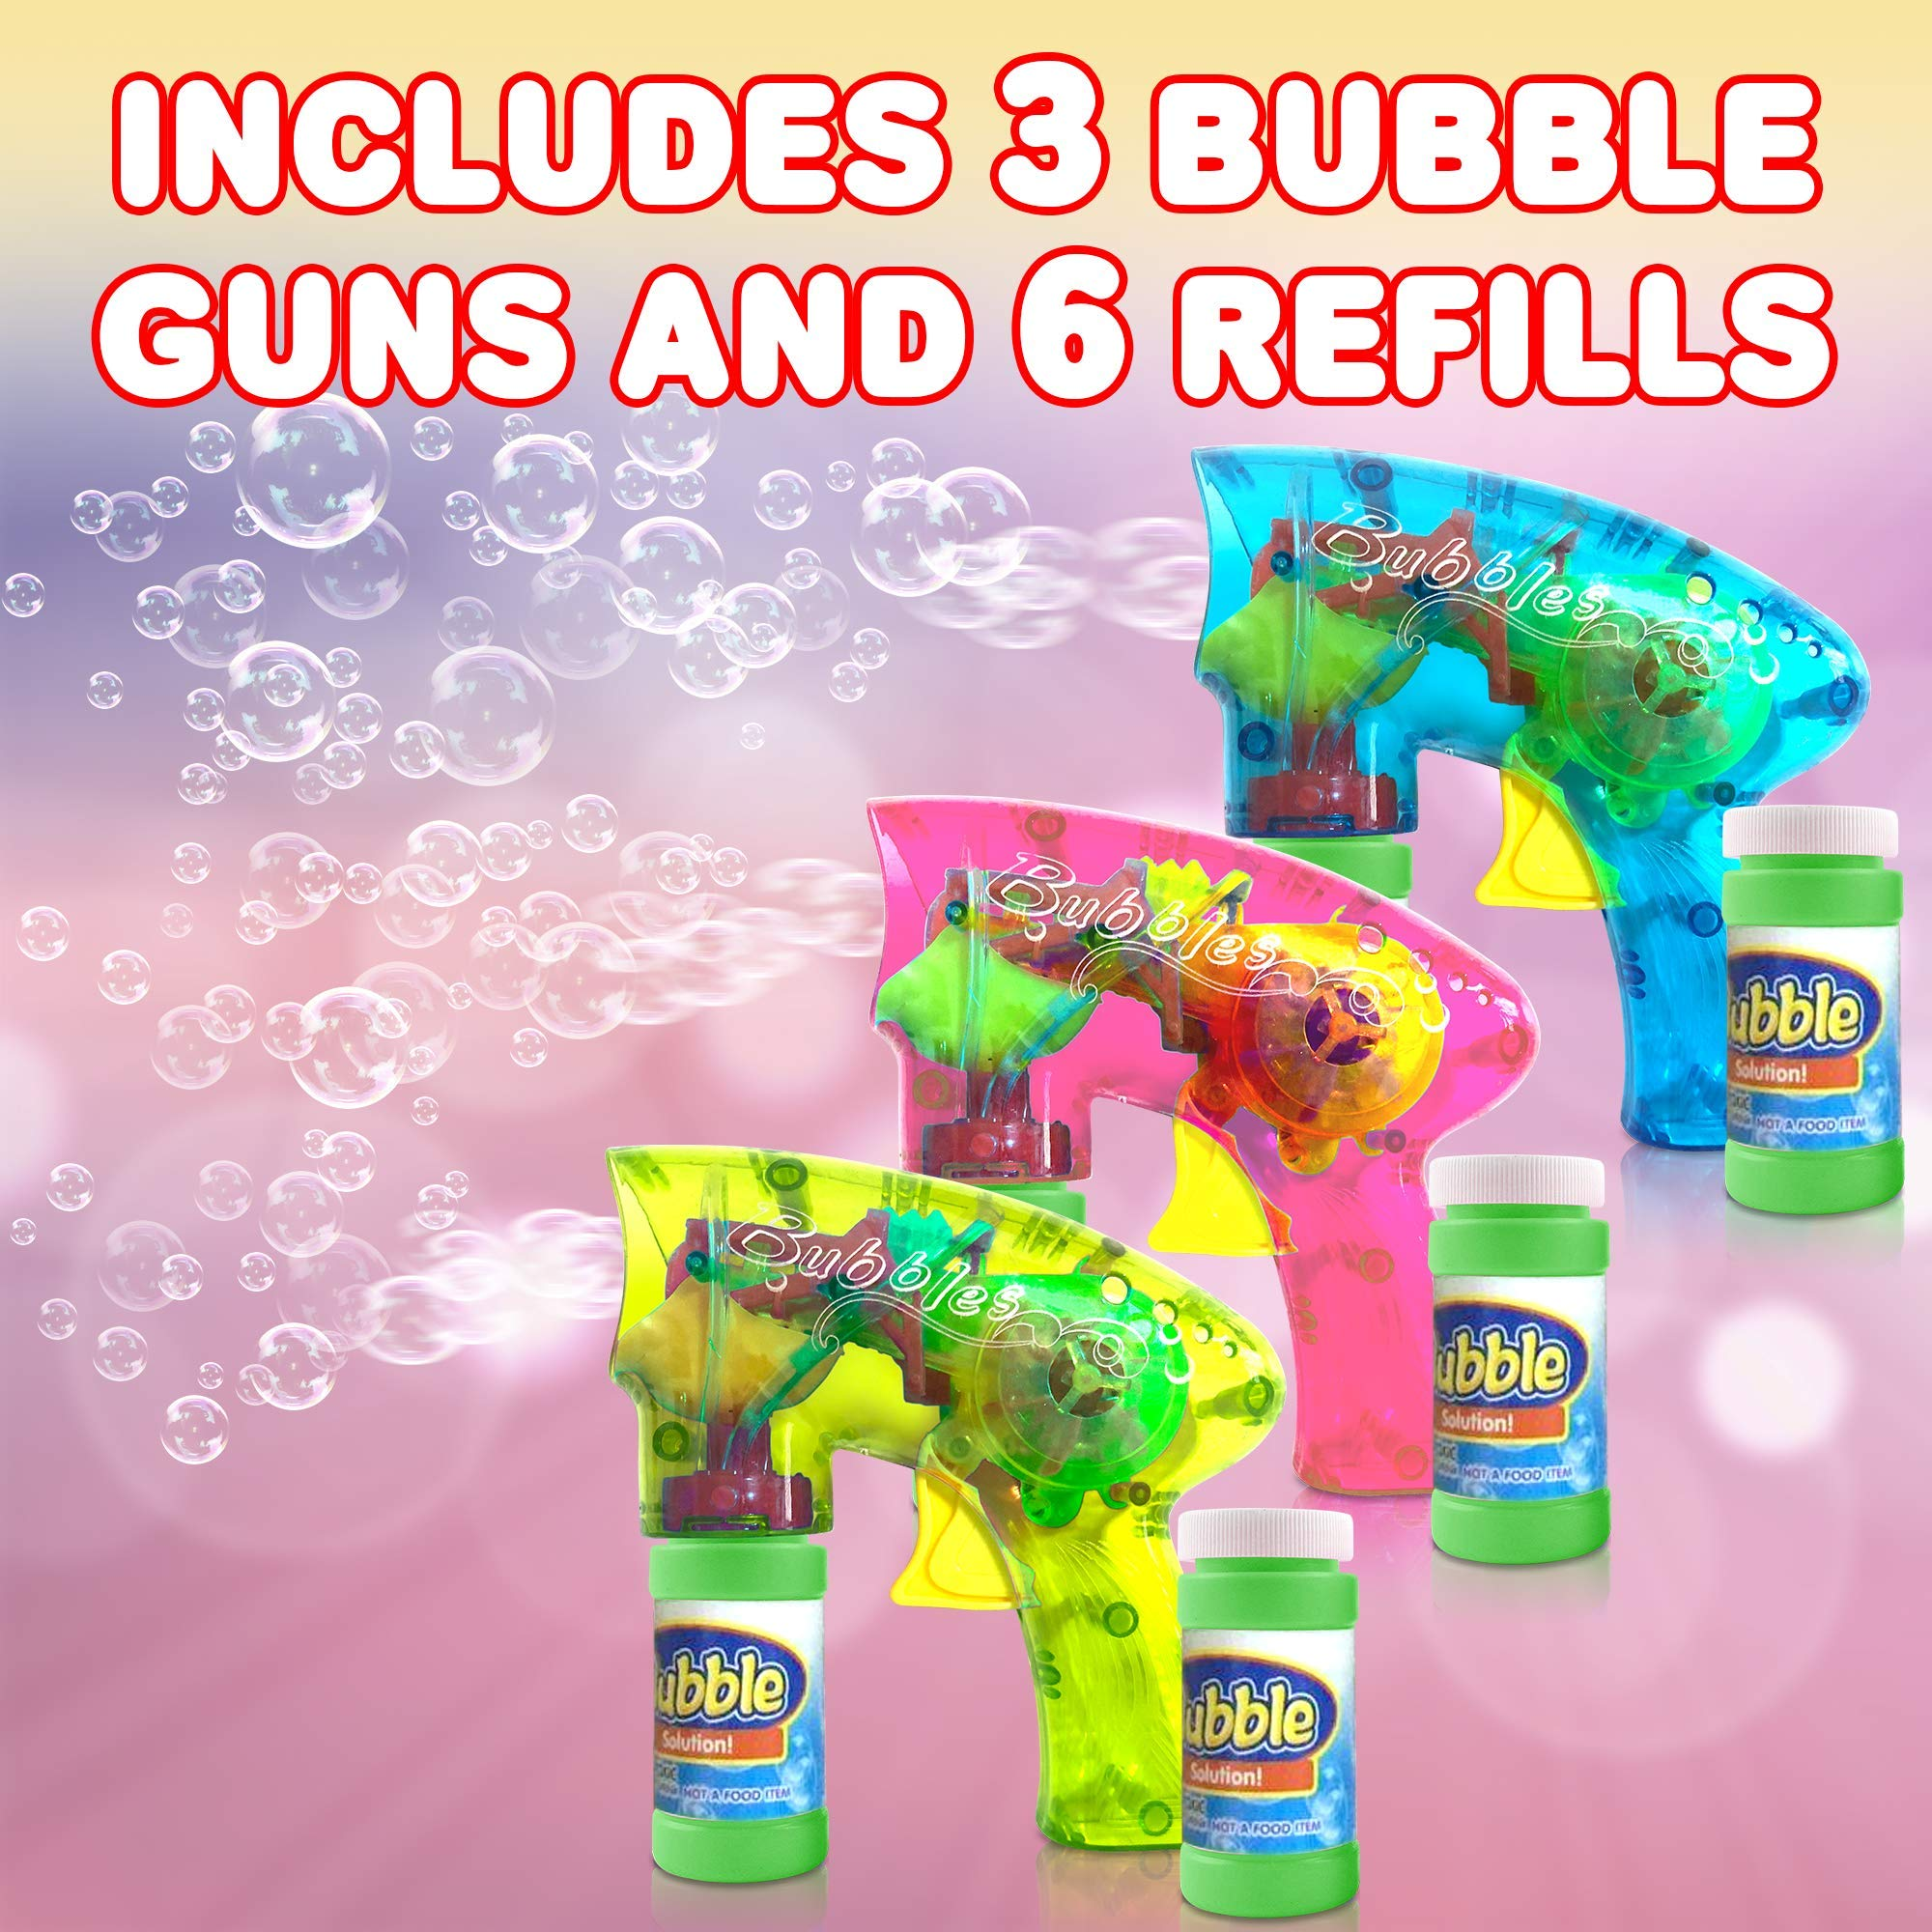 ArtCreativity Friction Powered Light Up Bubble Blaster Set (Set of 3) | Includes 3 LED Bubbles Guns & 6 Bottles of Bubble Fluid | Outdoor, Indoor Fun | Gift Idea, Party Activity | No Batteries Needed by ArtCreativity (Image #3)